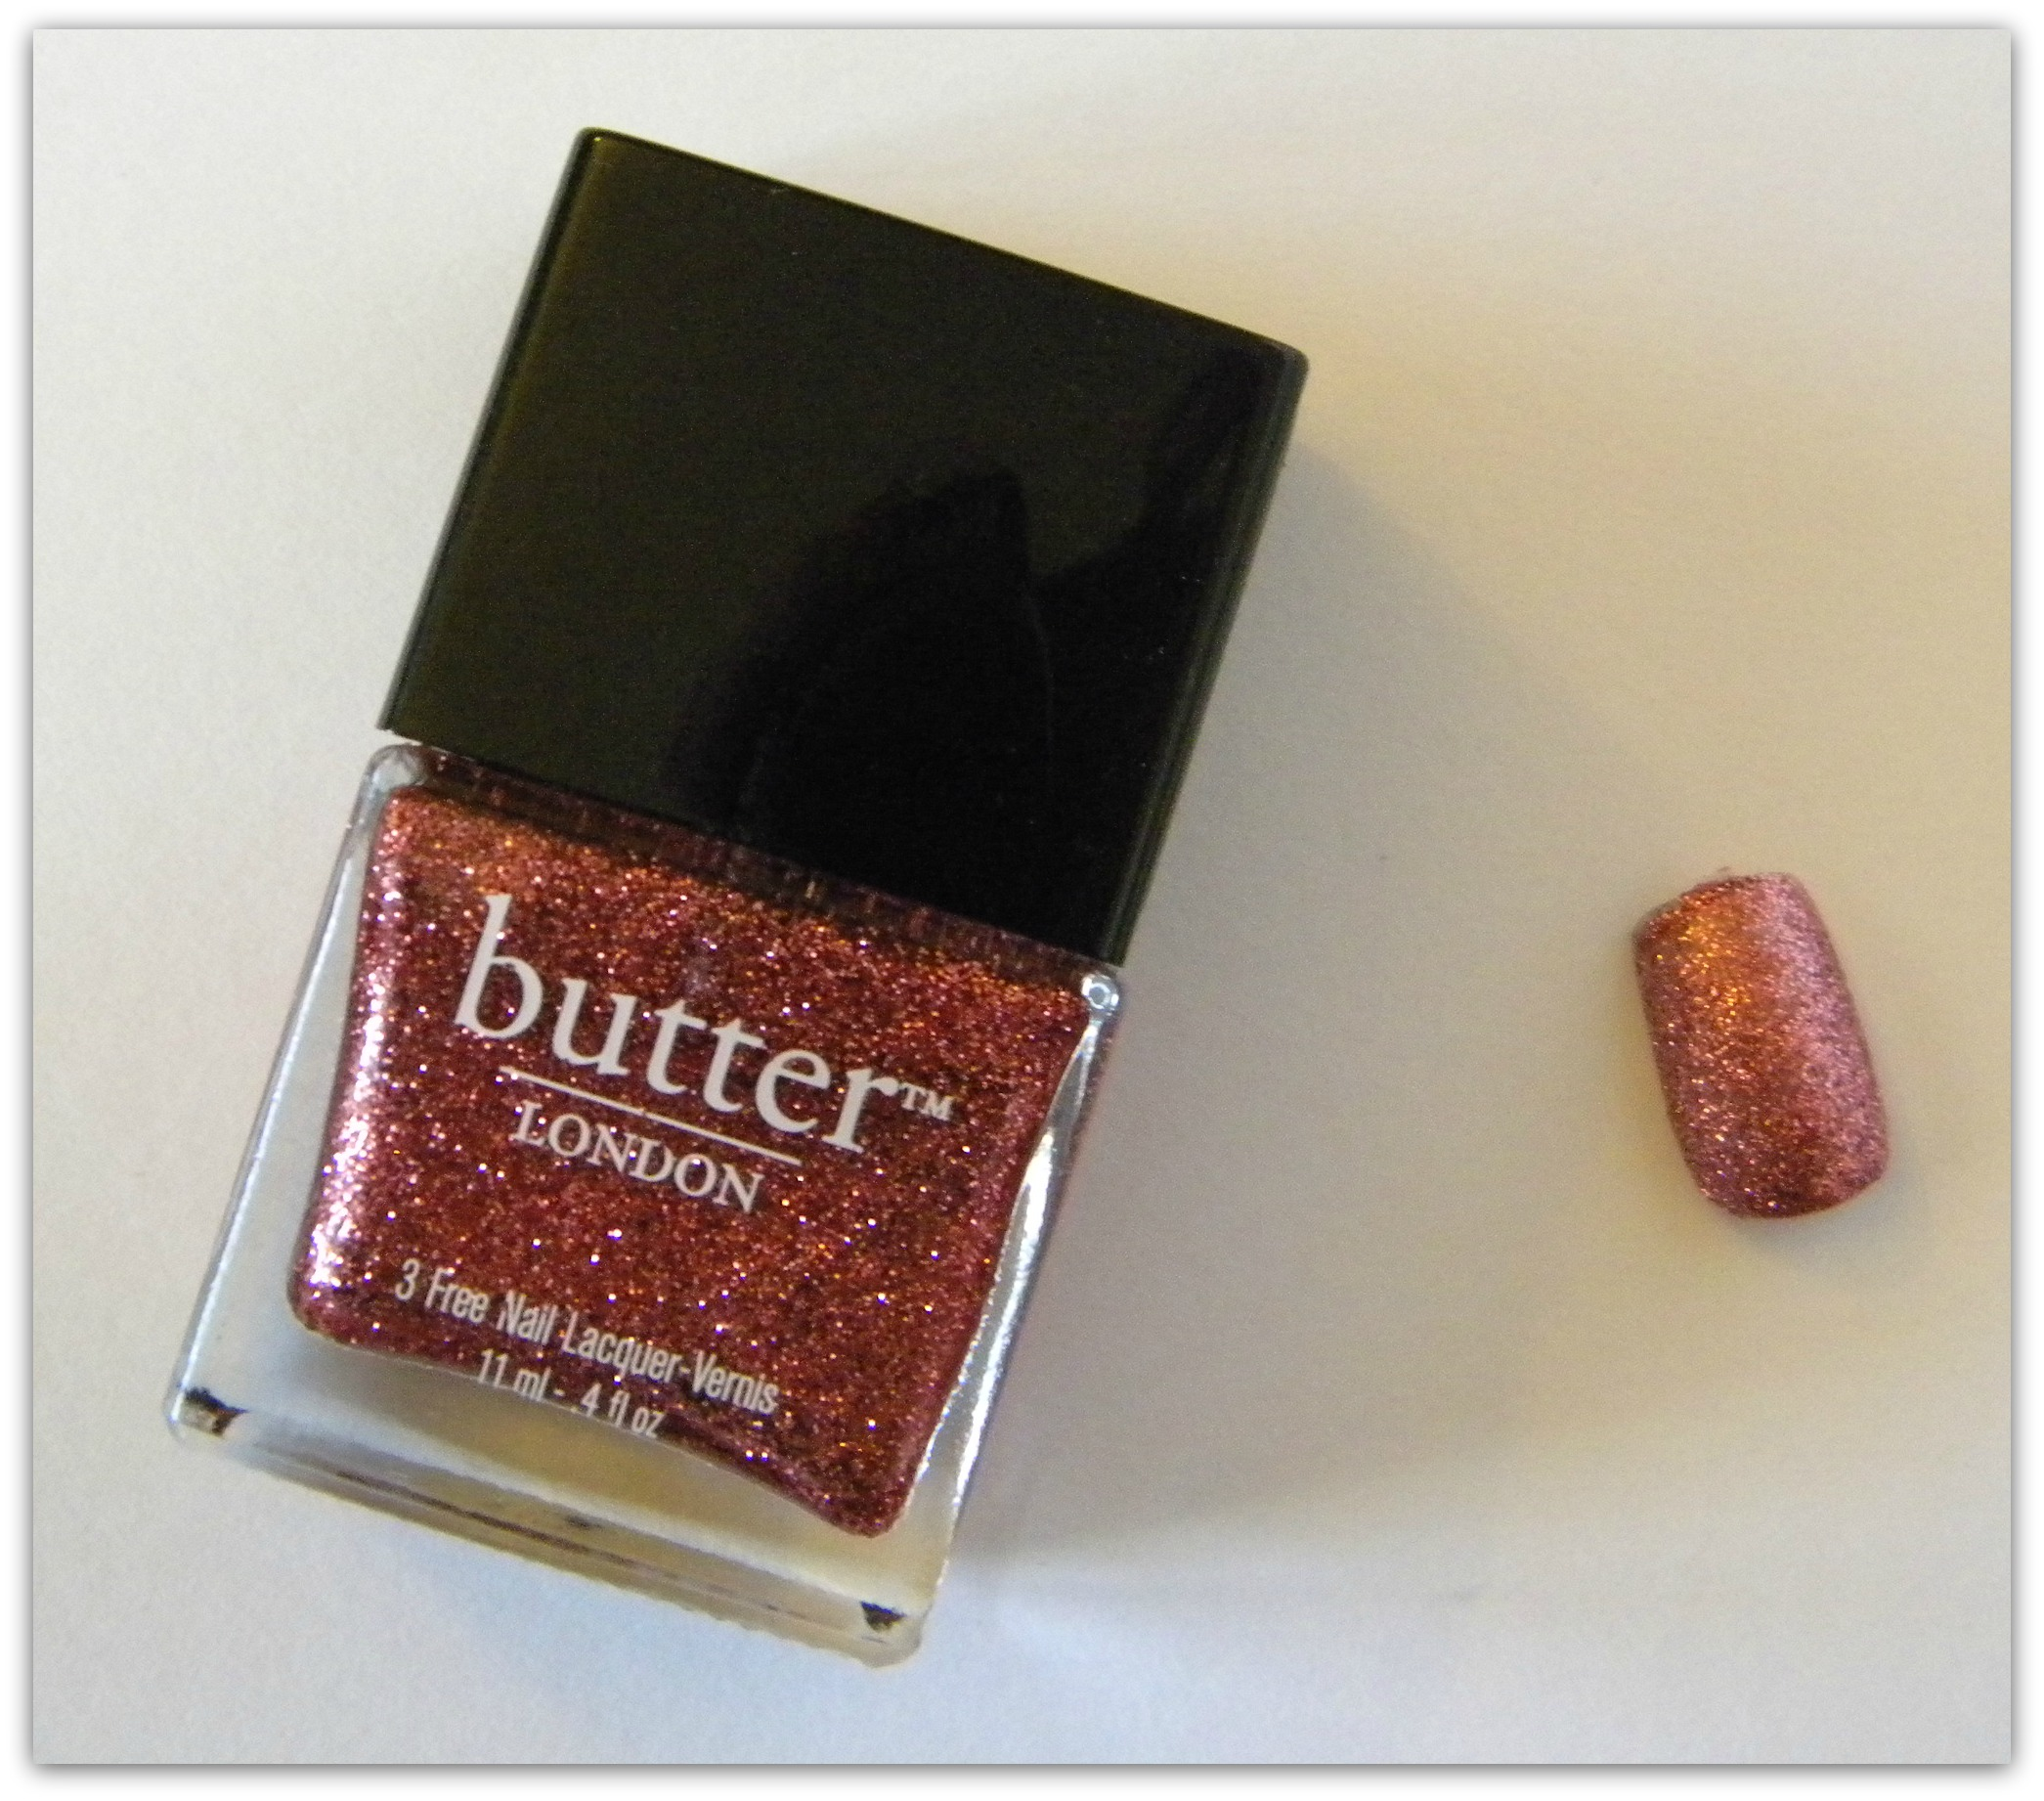 Butter London's Rosie Lee